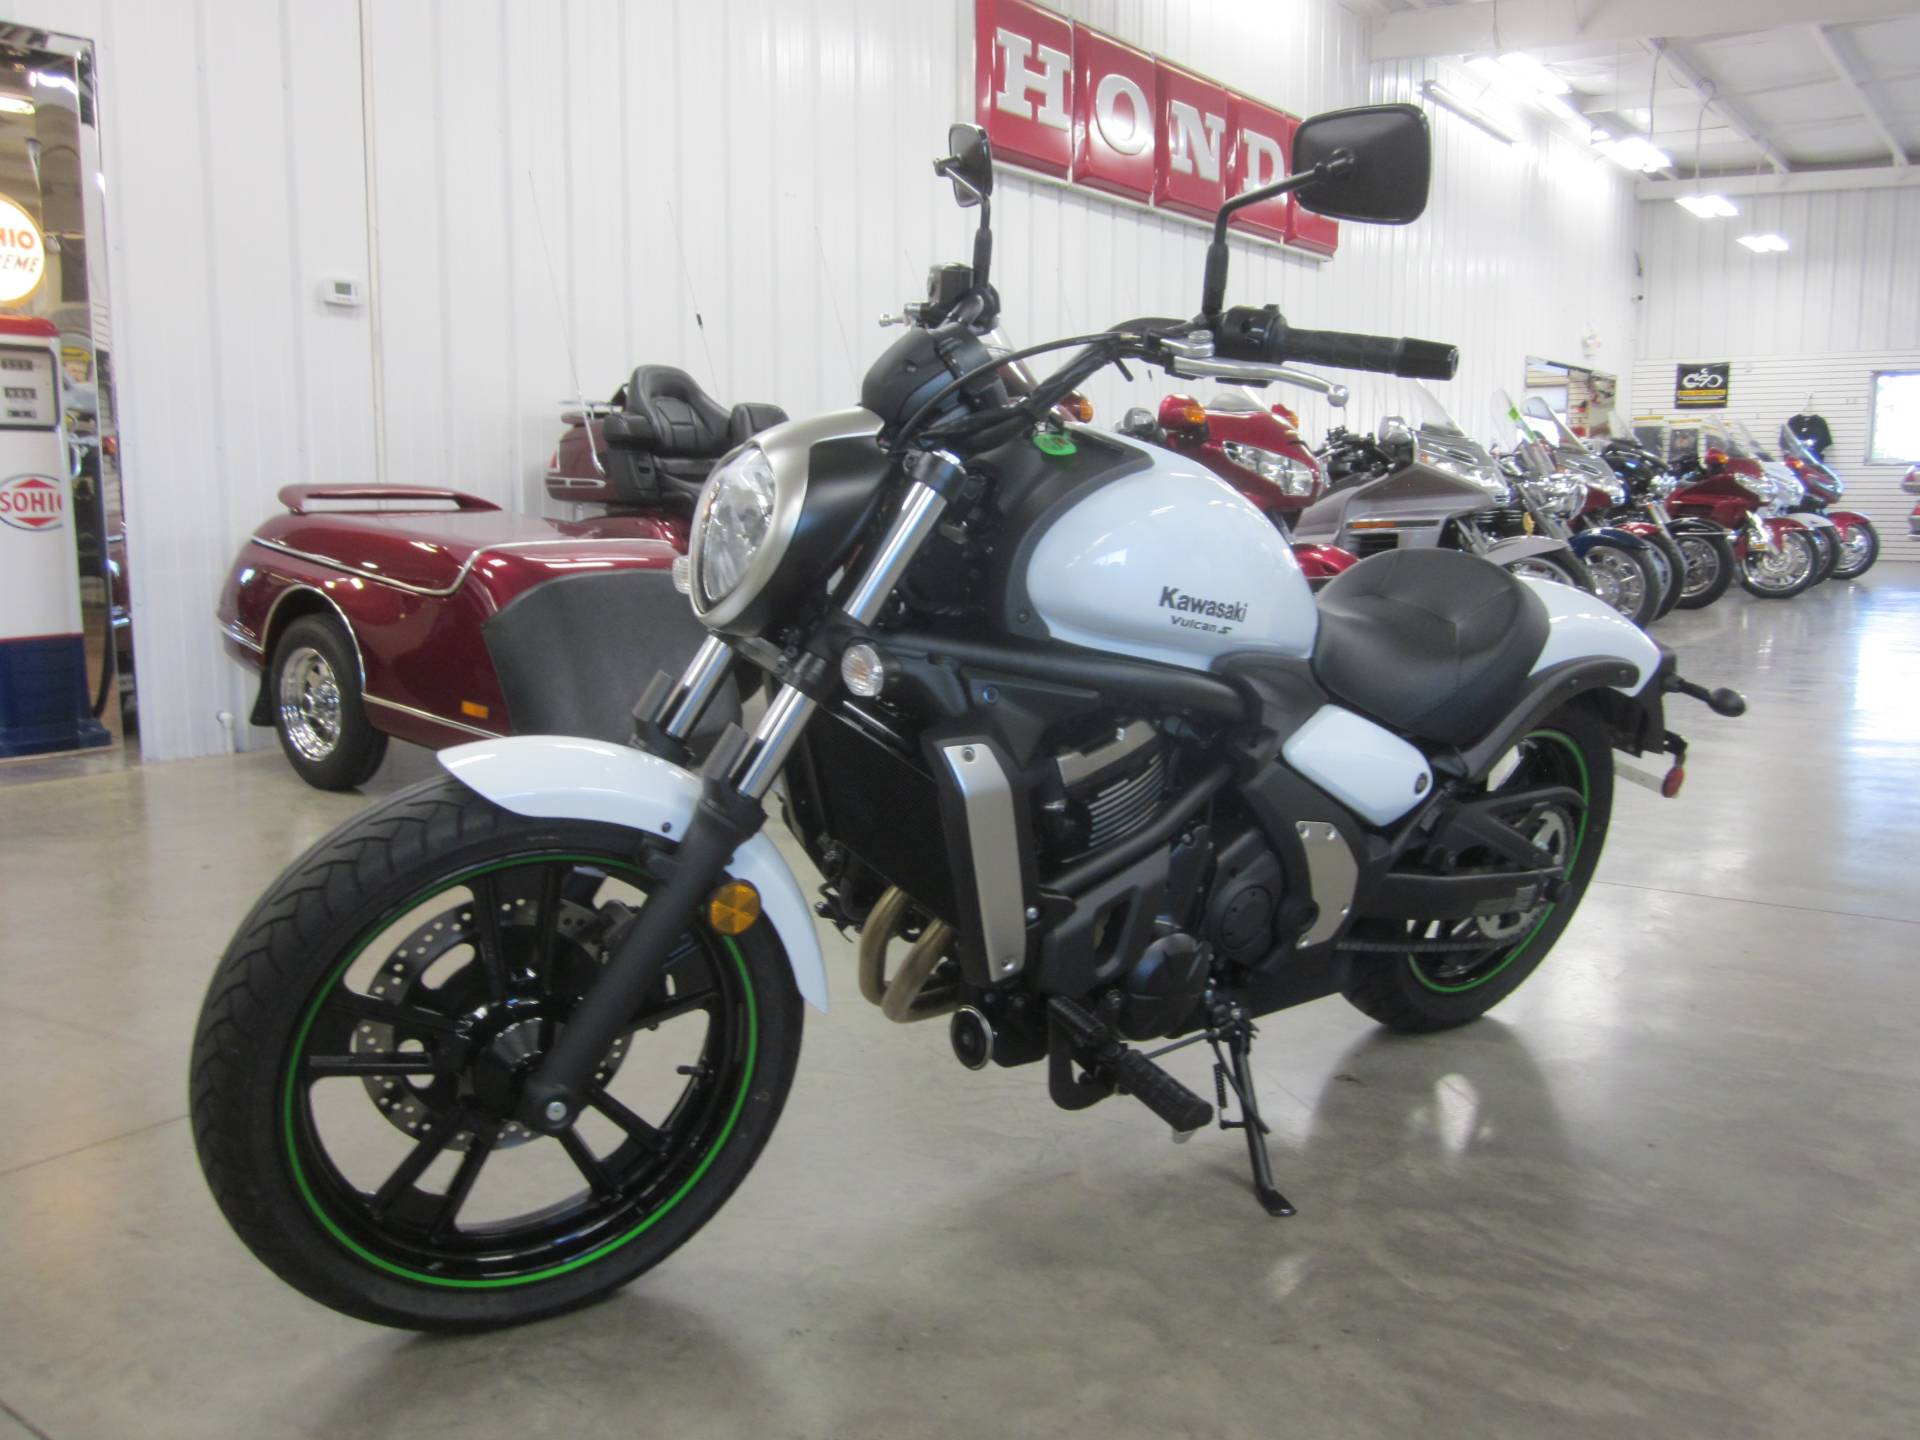 2015 Kawasaki Vulcan S in Lima, Ohio - Photo 4